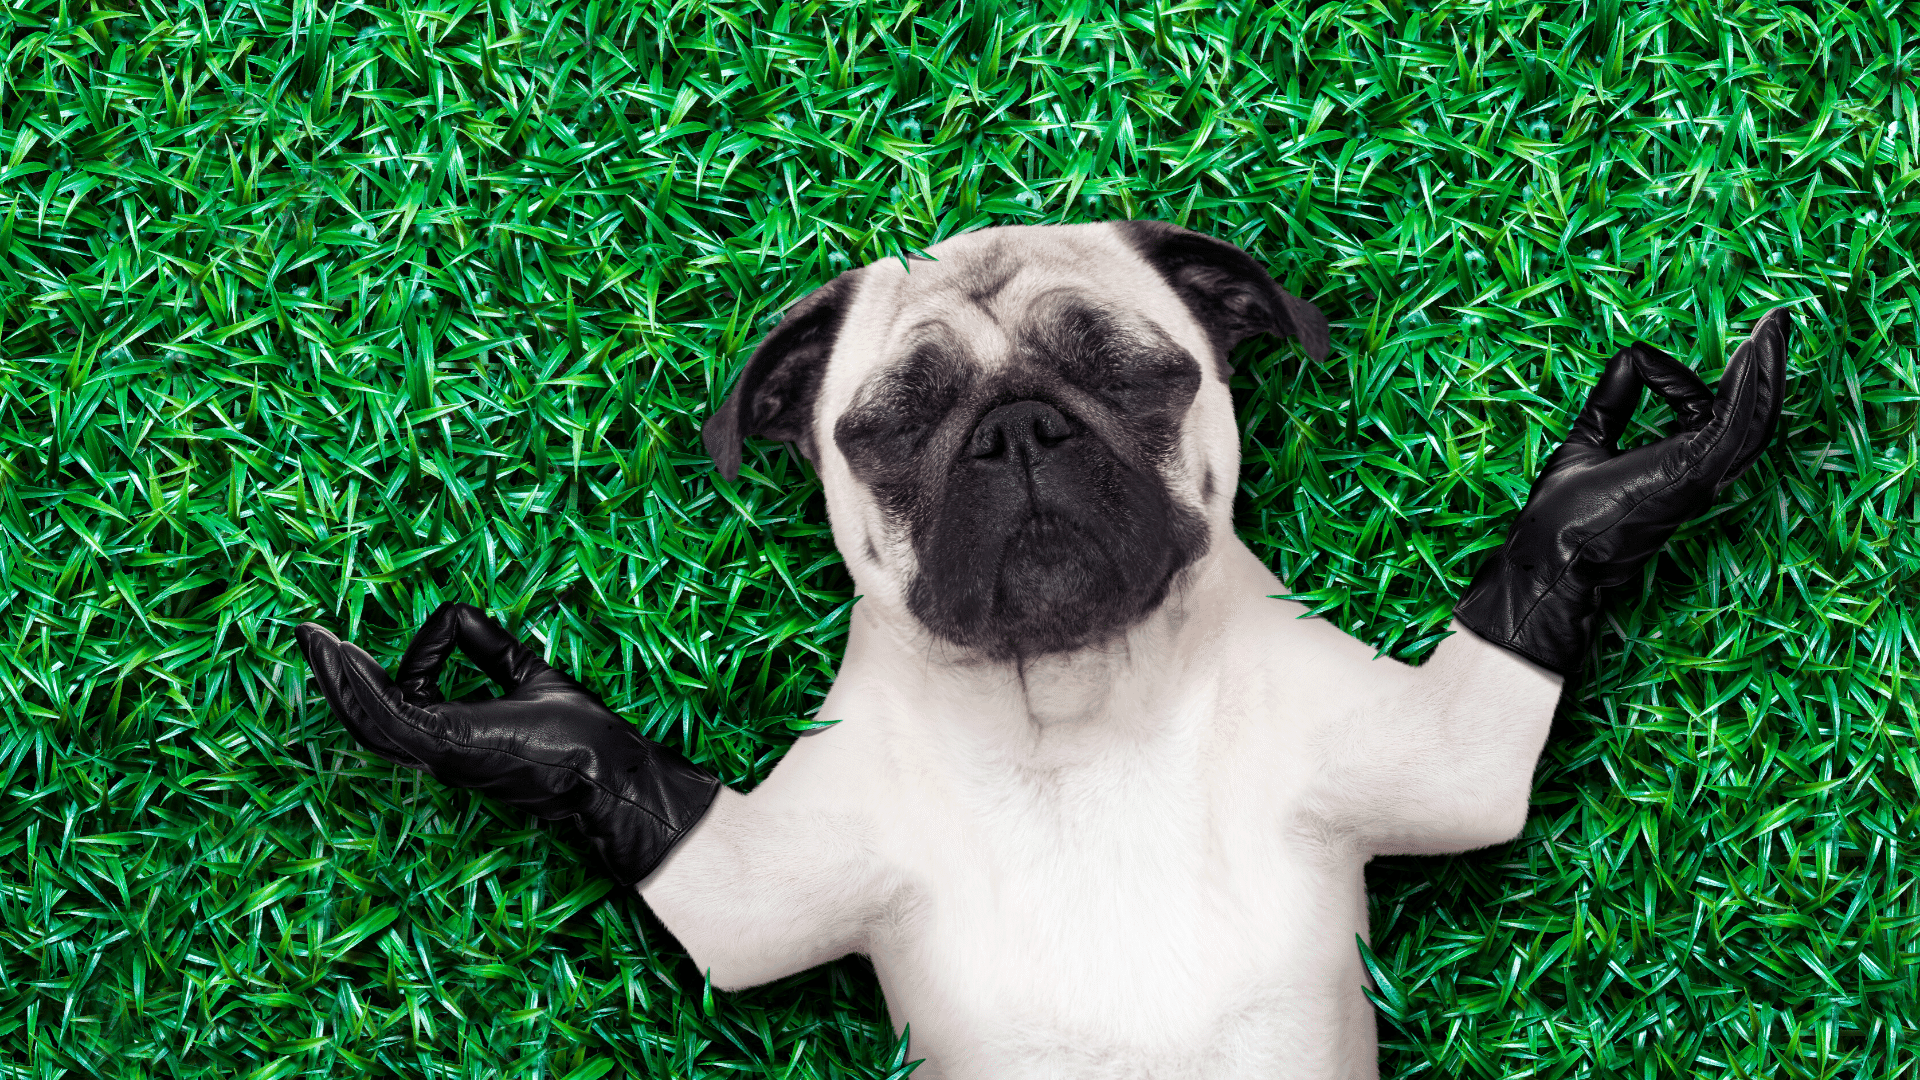 Dog relaxing on the grass in yoga position